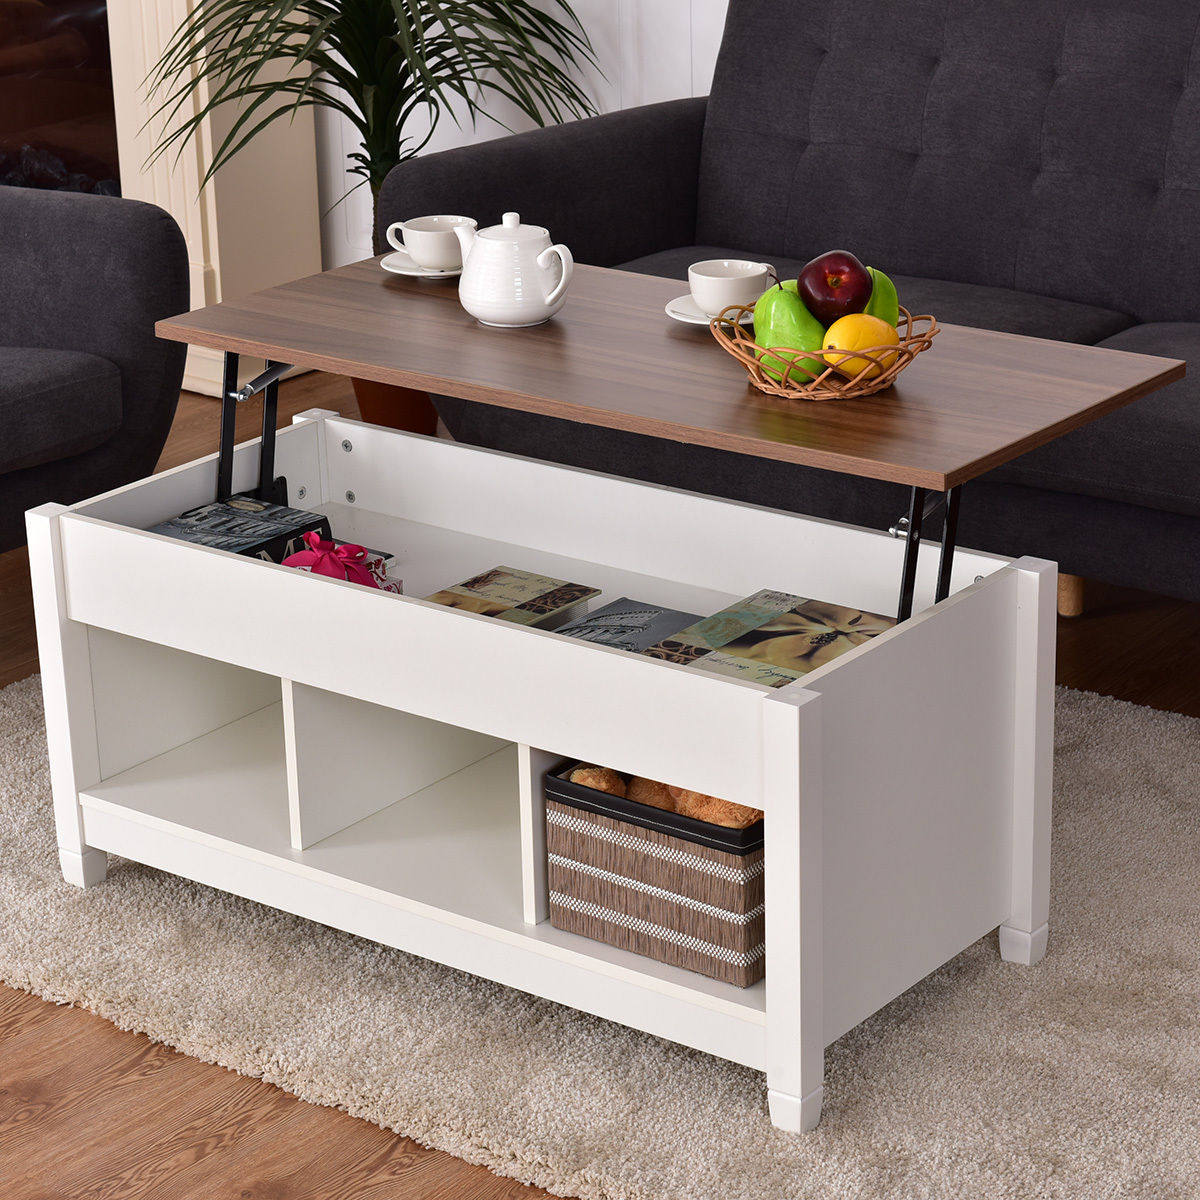 Lift Top Coffee Table With Hidden Storage Compartment Coffee Tables Accent Tables Tables Furniture